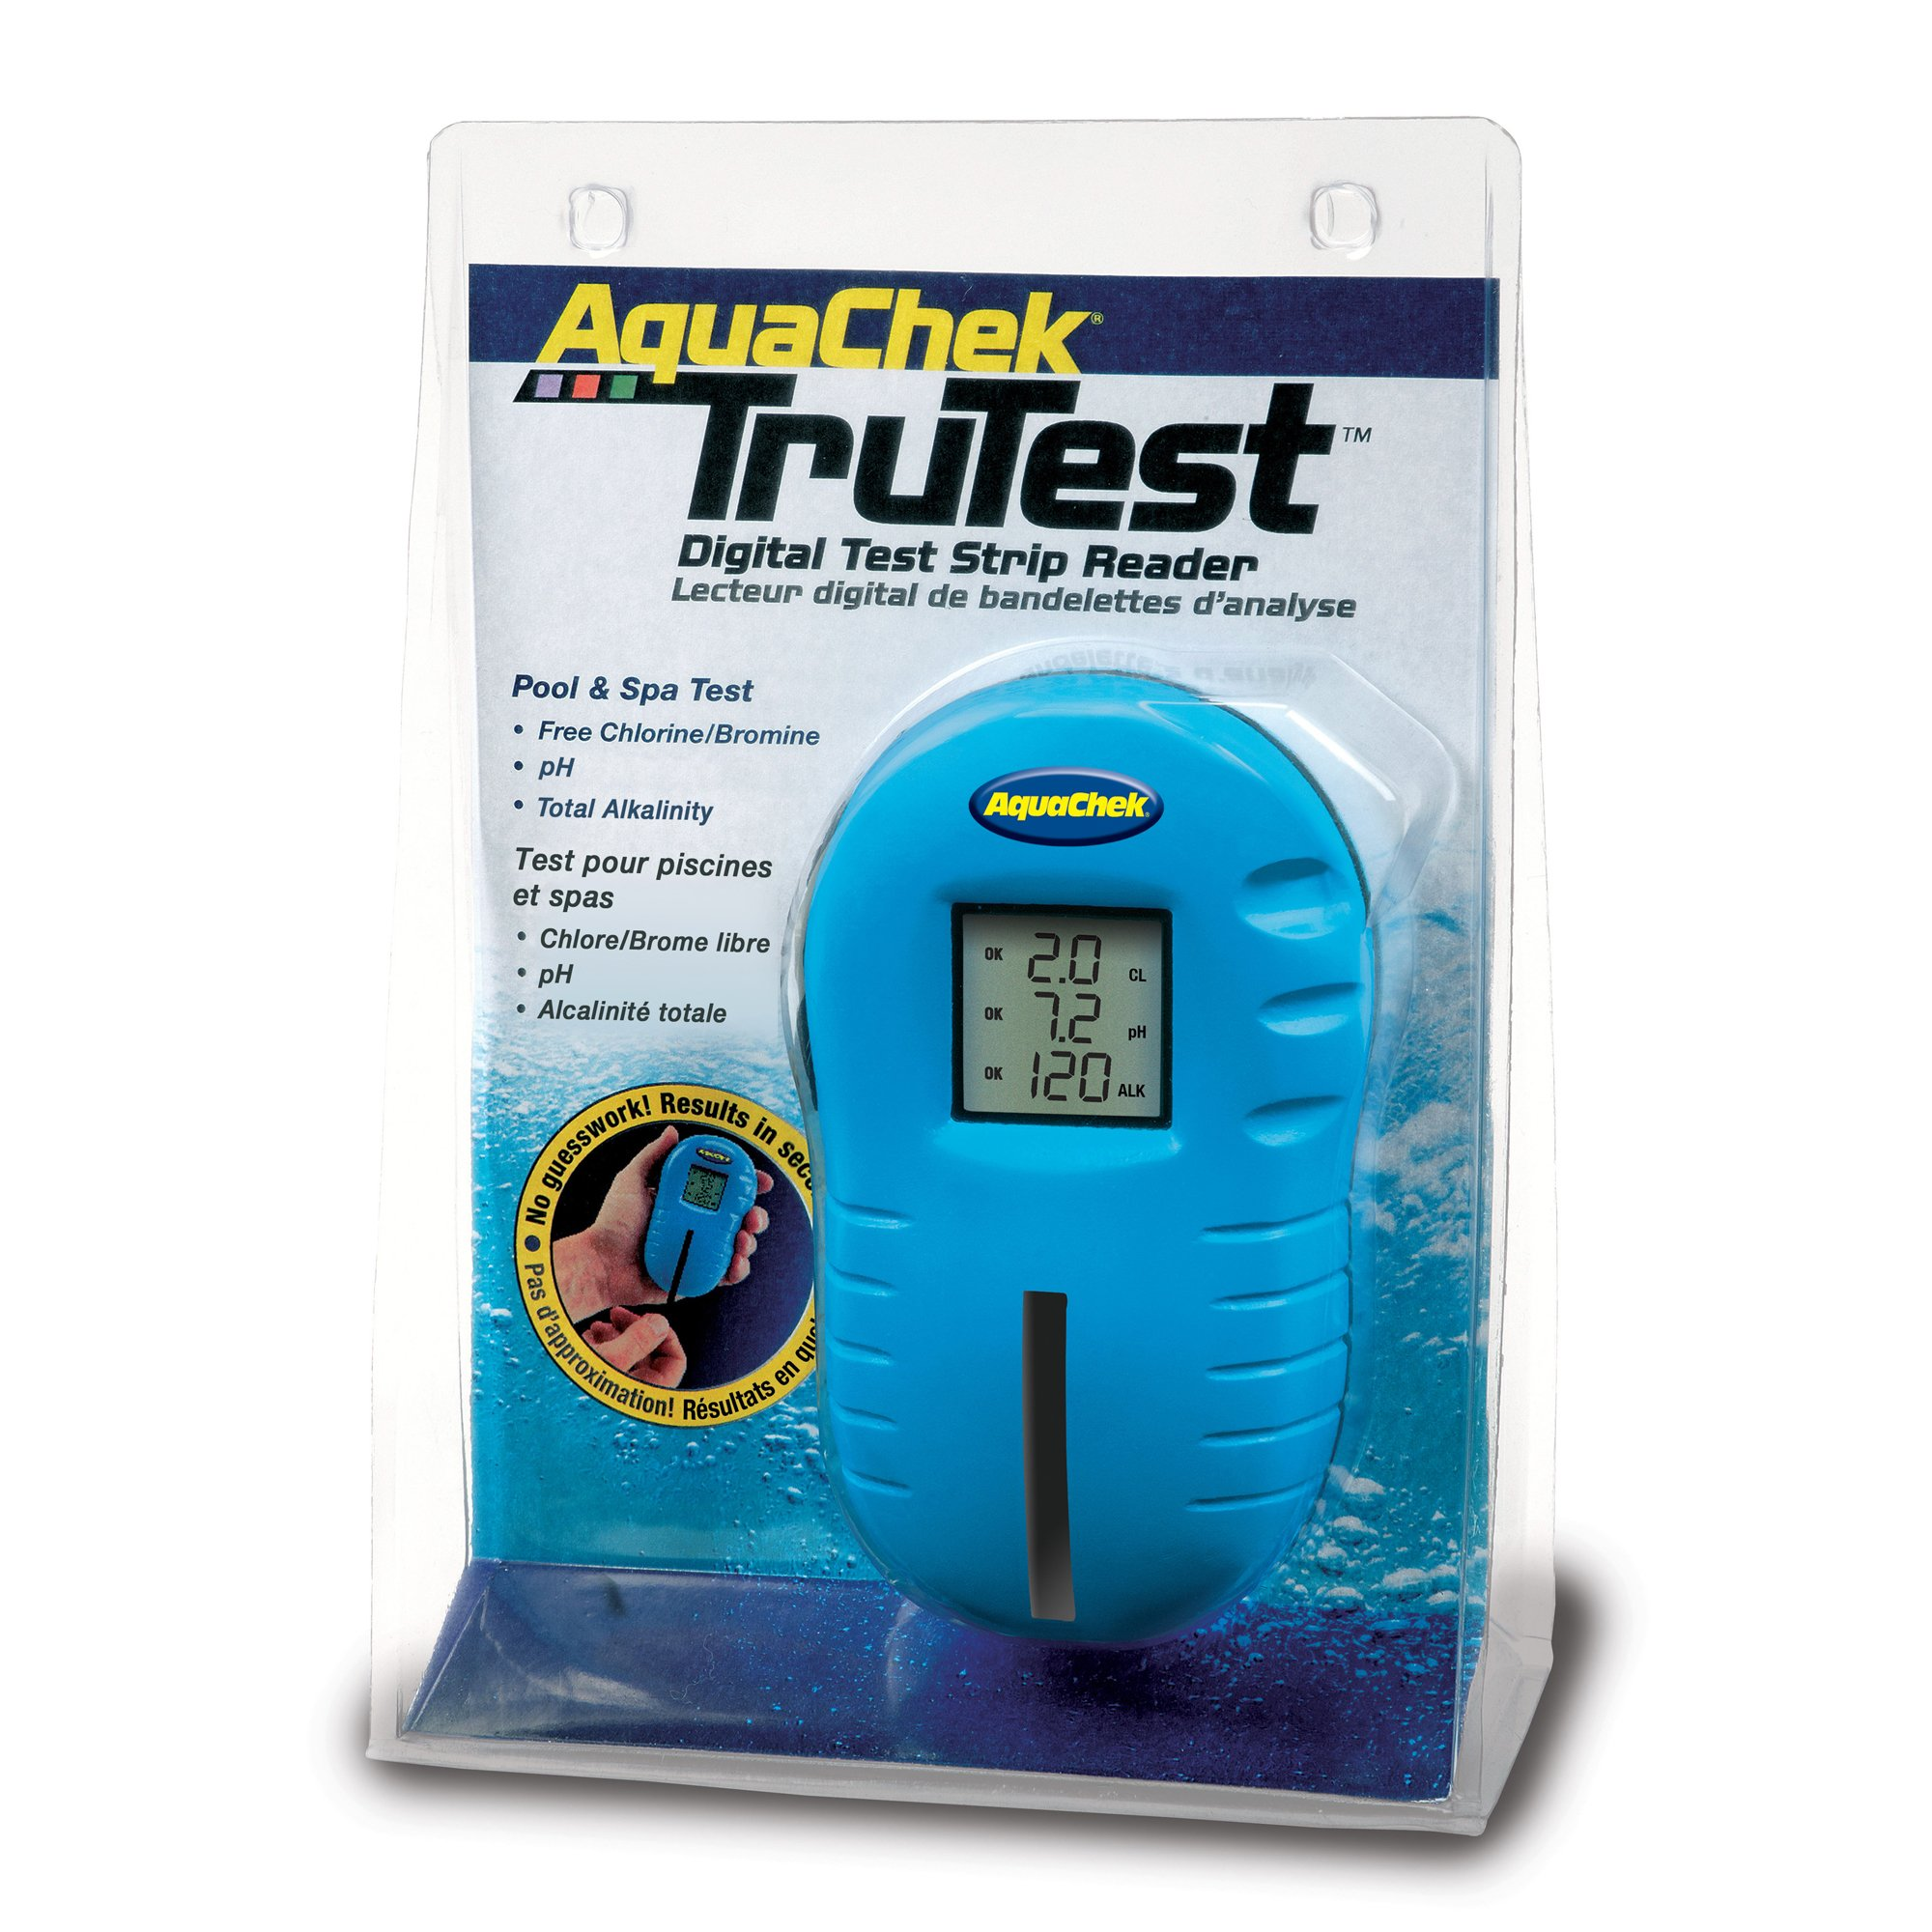 Aqua Chek Aqua Chek Trutest Digital Reader by AquaChek